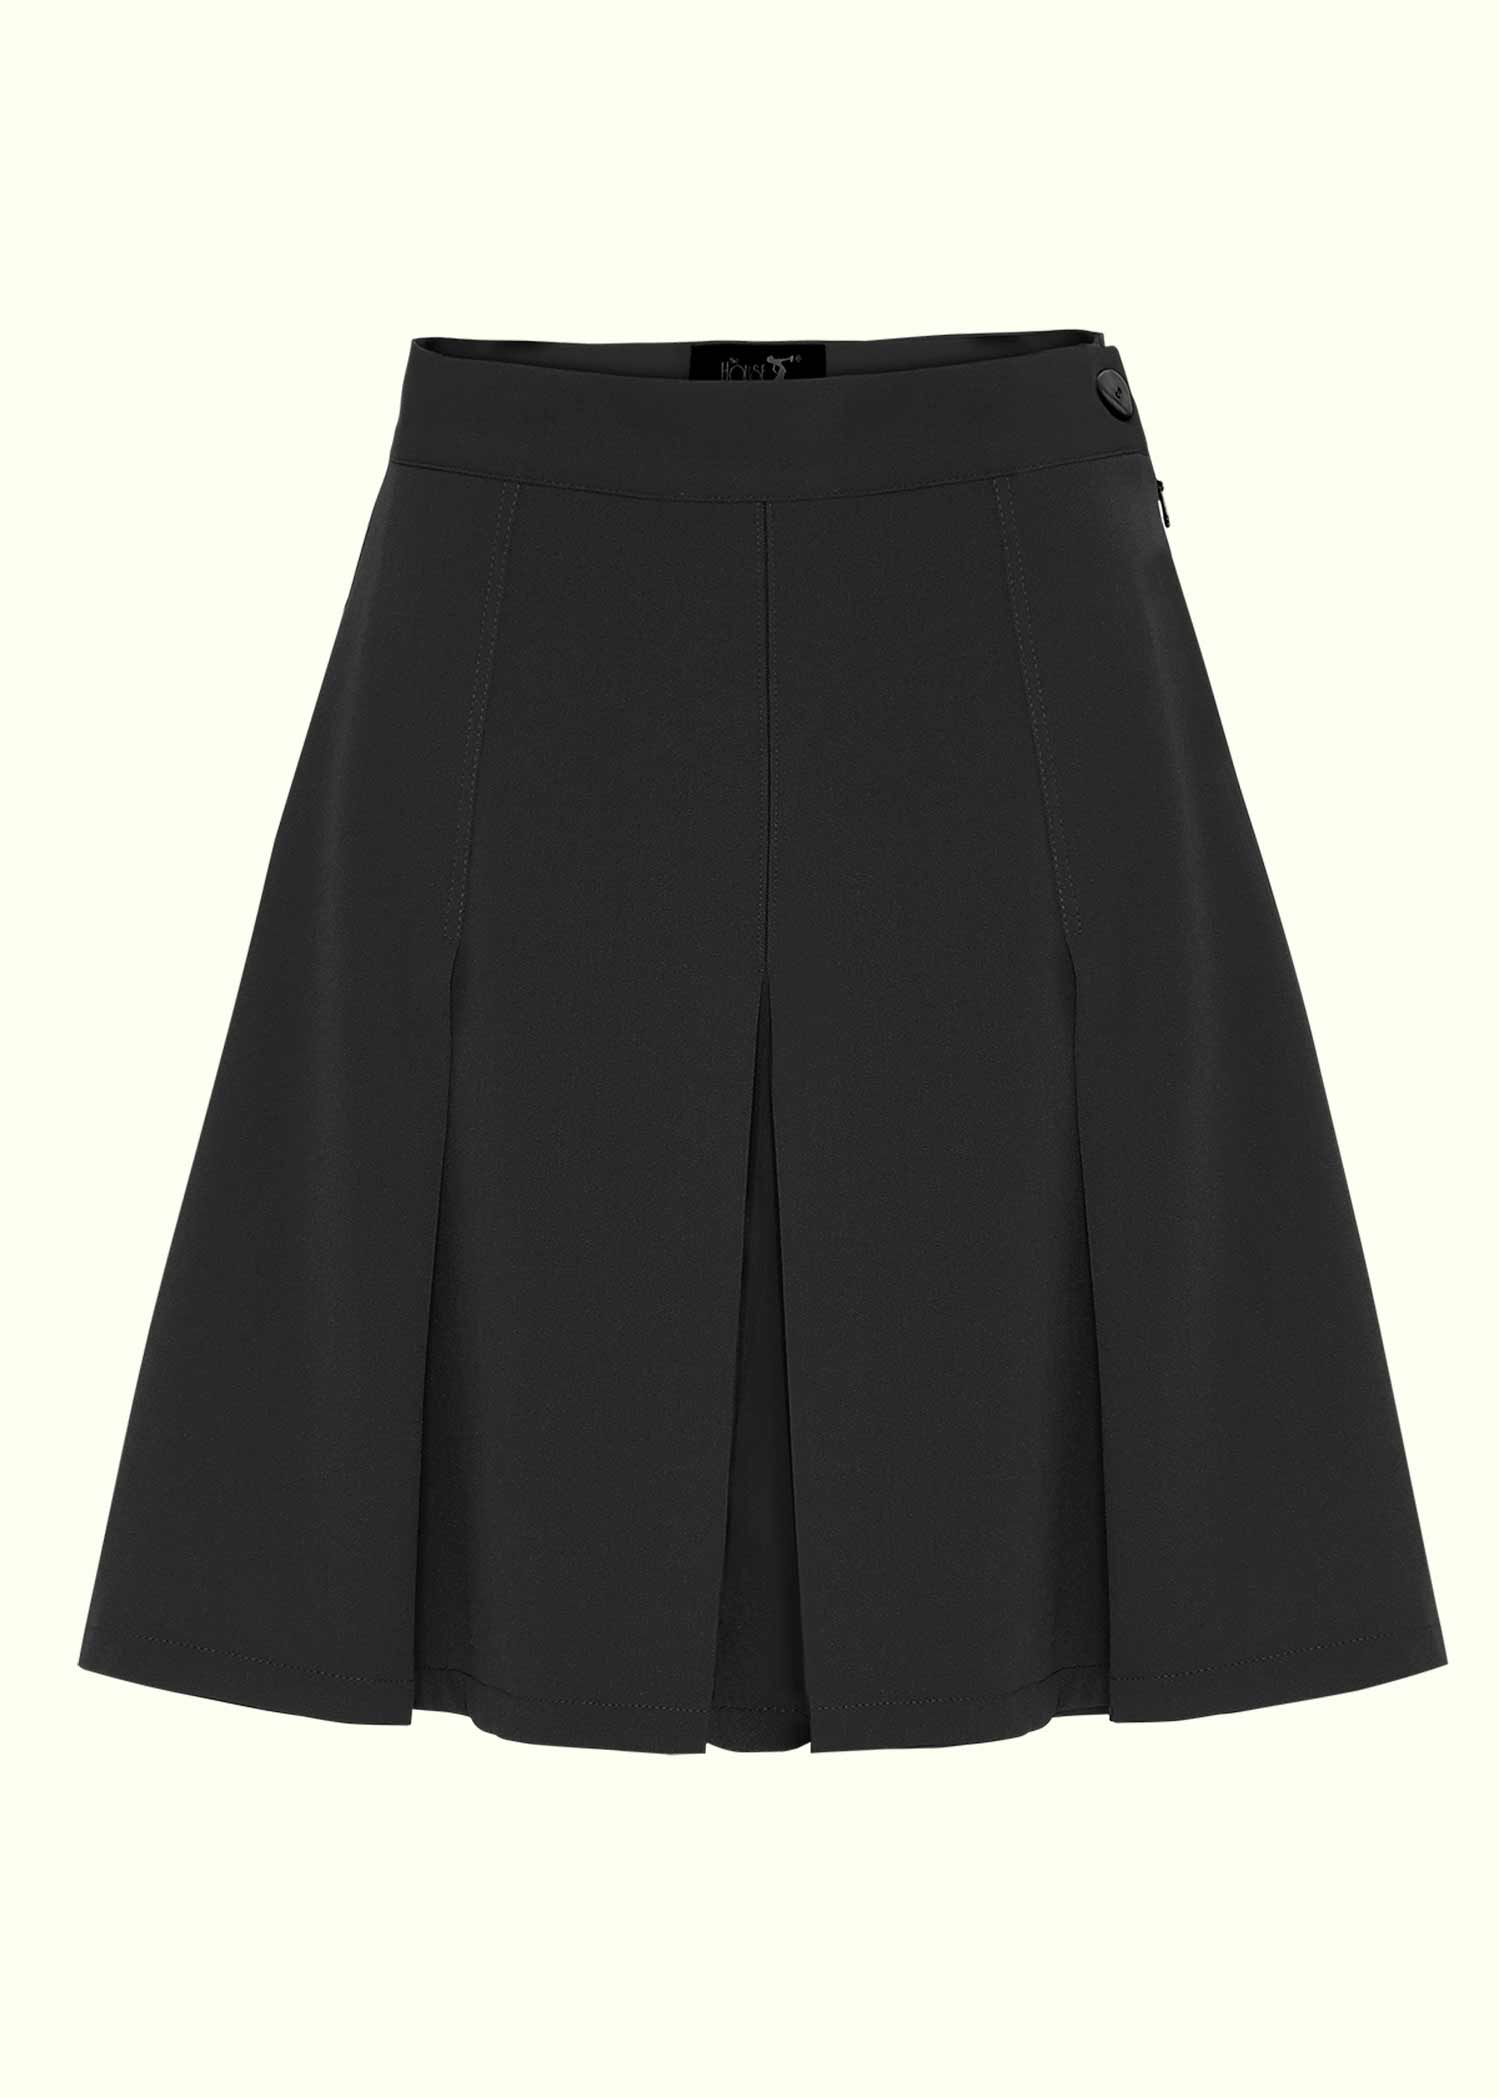 Flared black shorts in 40s vintage style from House Of Foxy